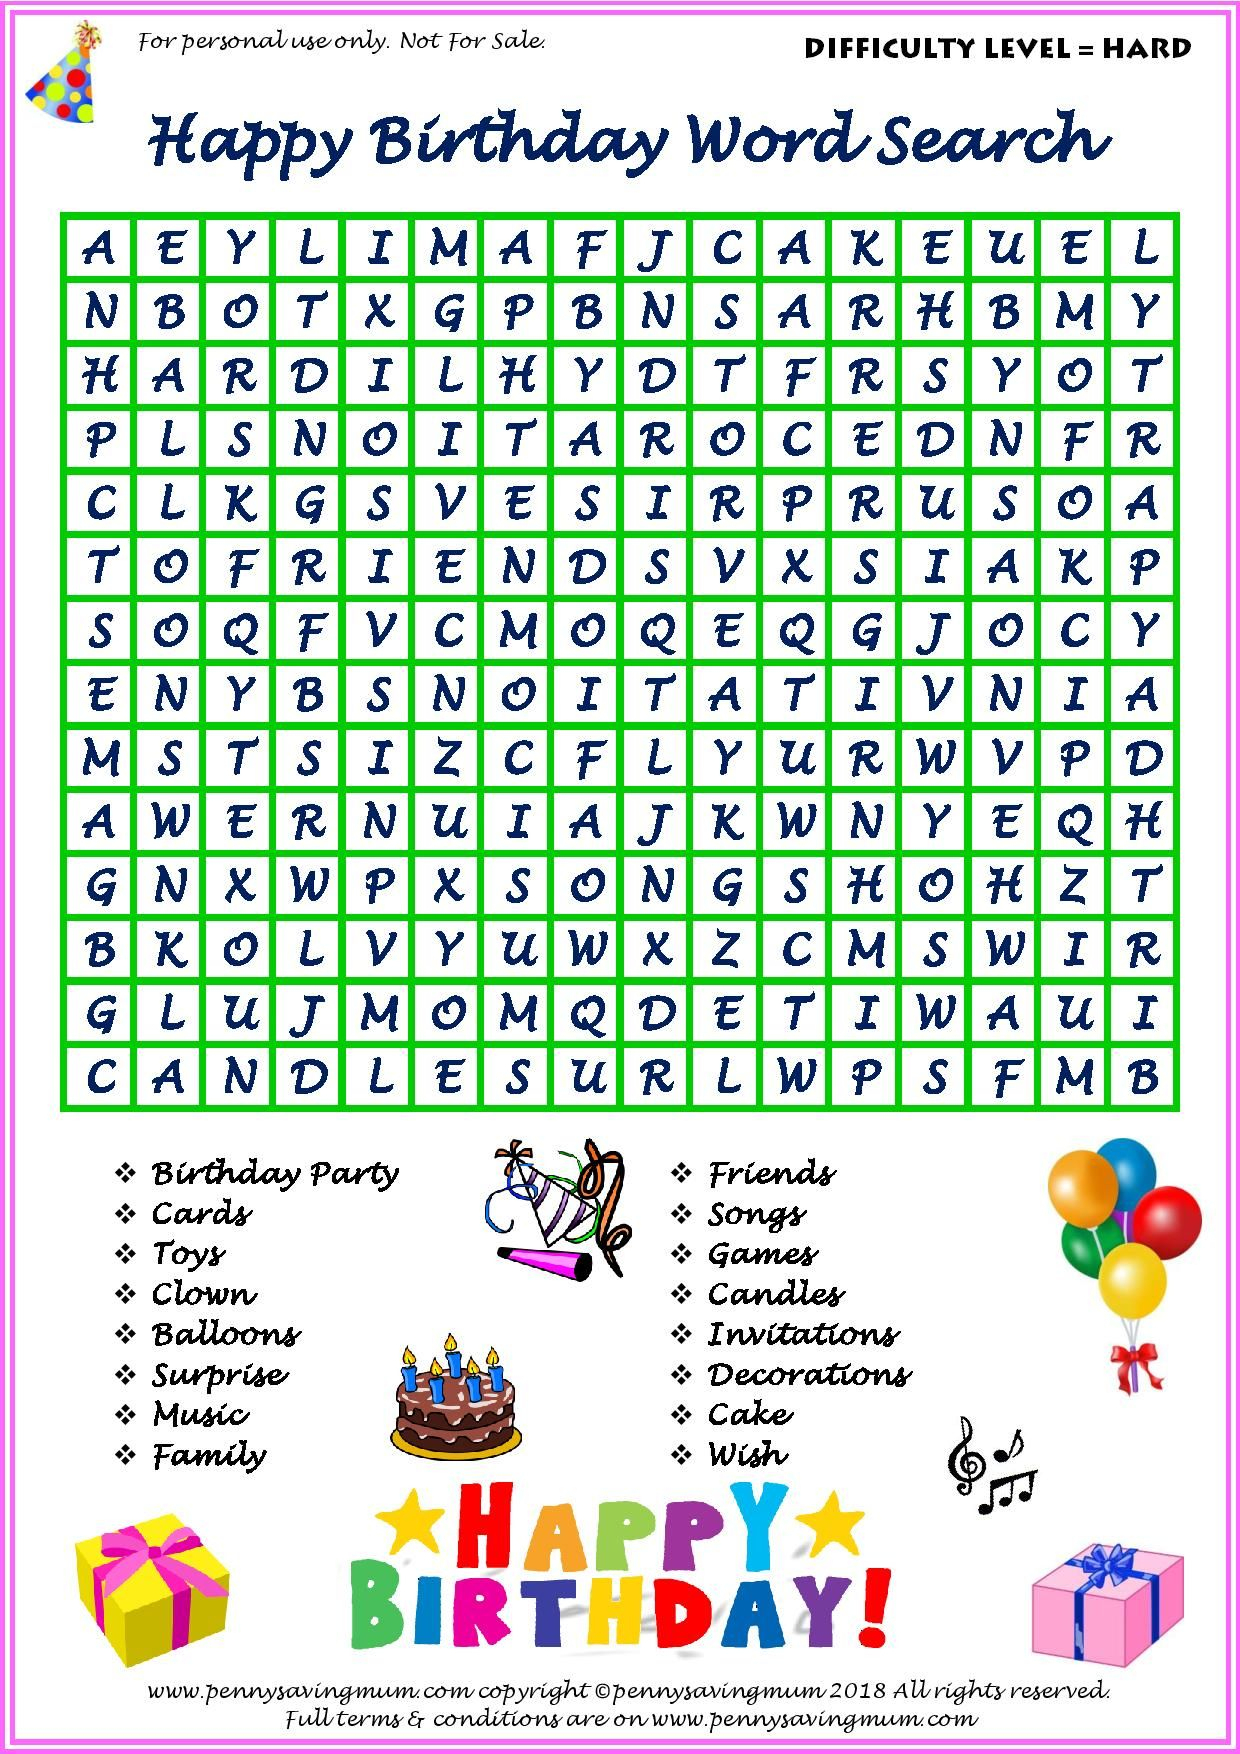 Word Search Happy Birthday (Hard Version) | Happy Birthday